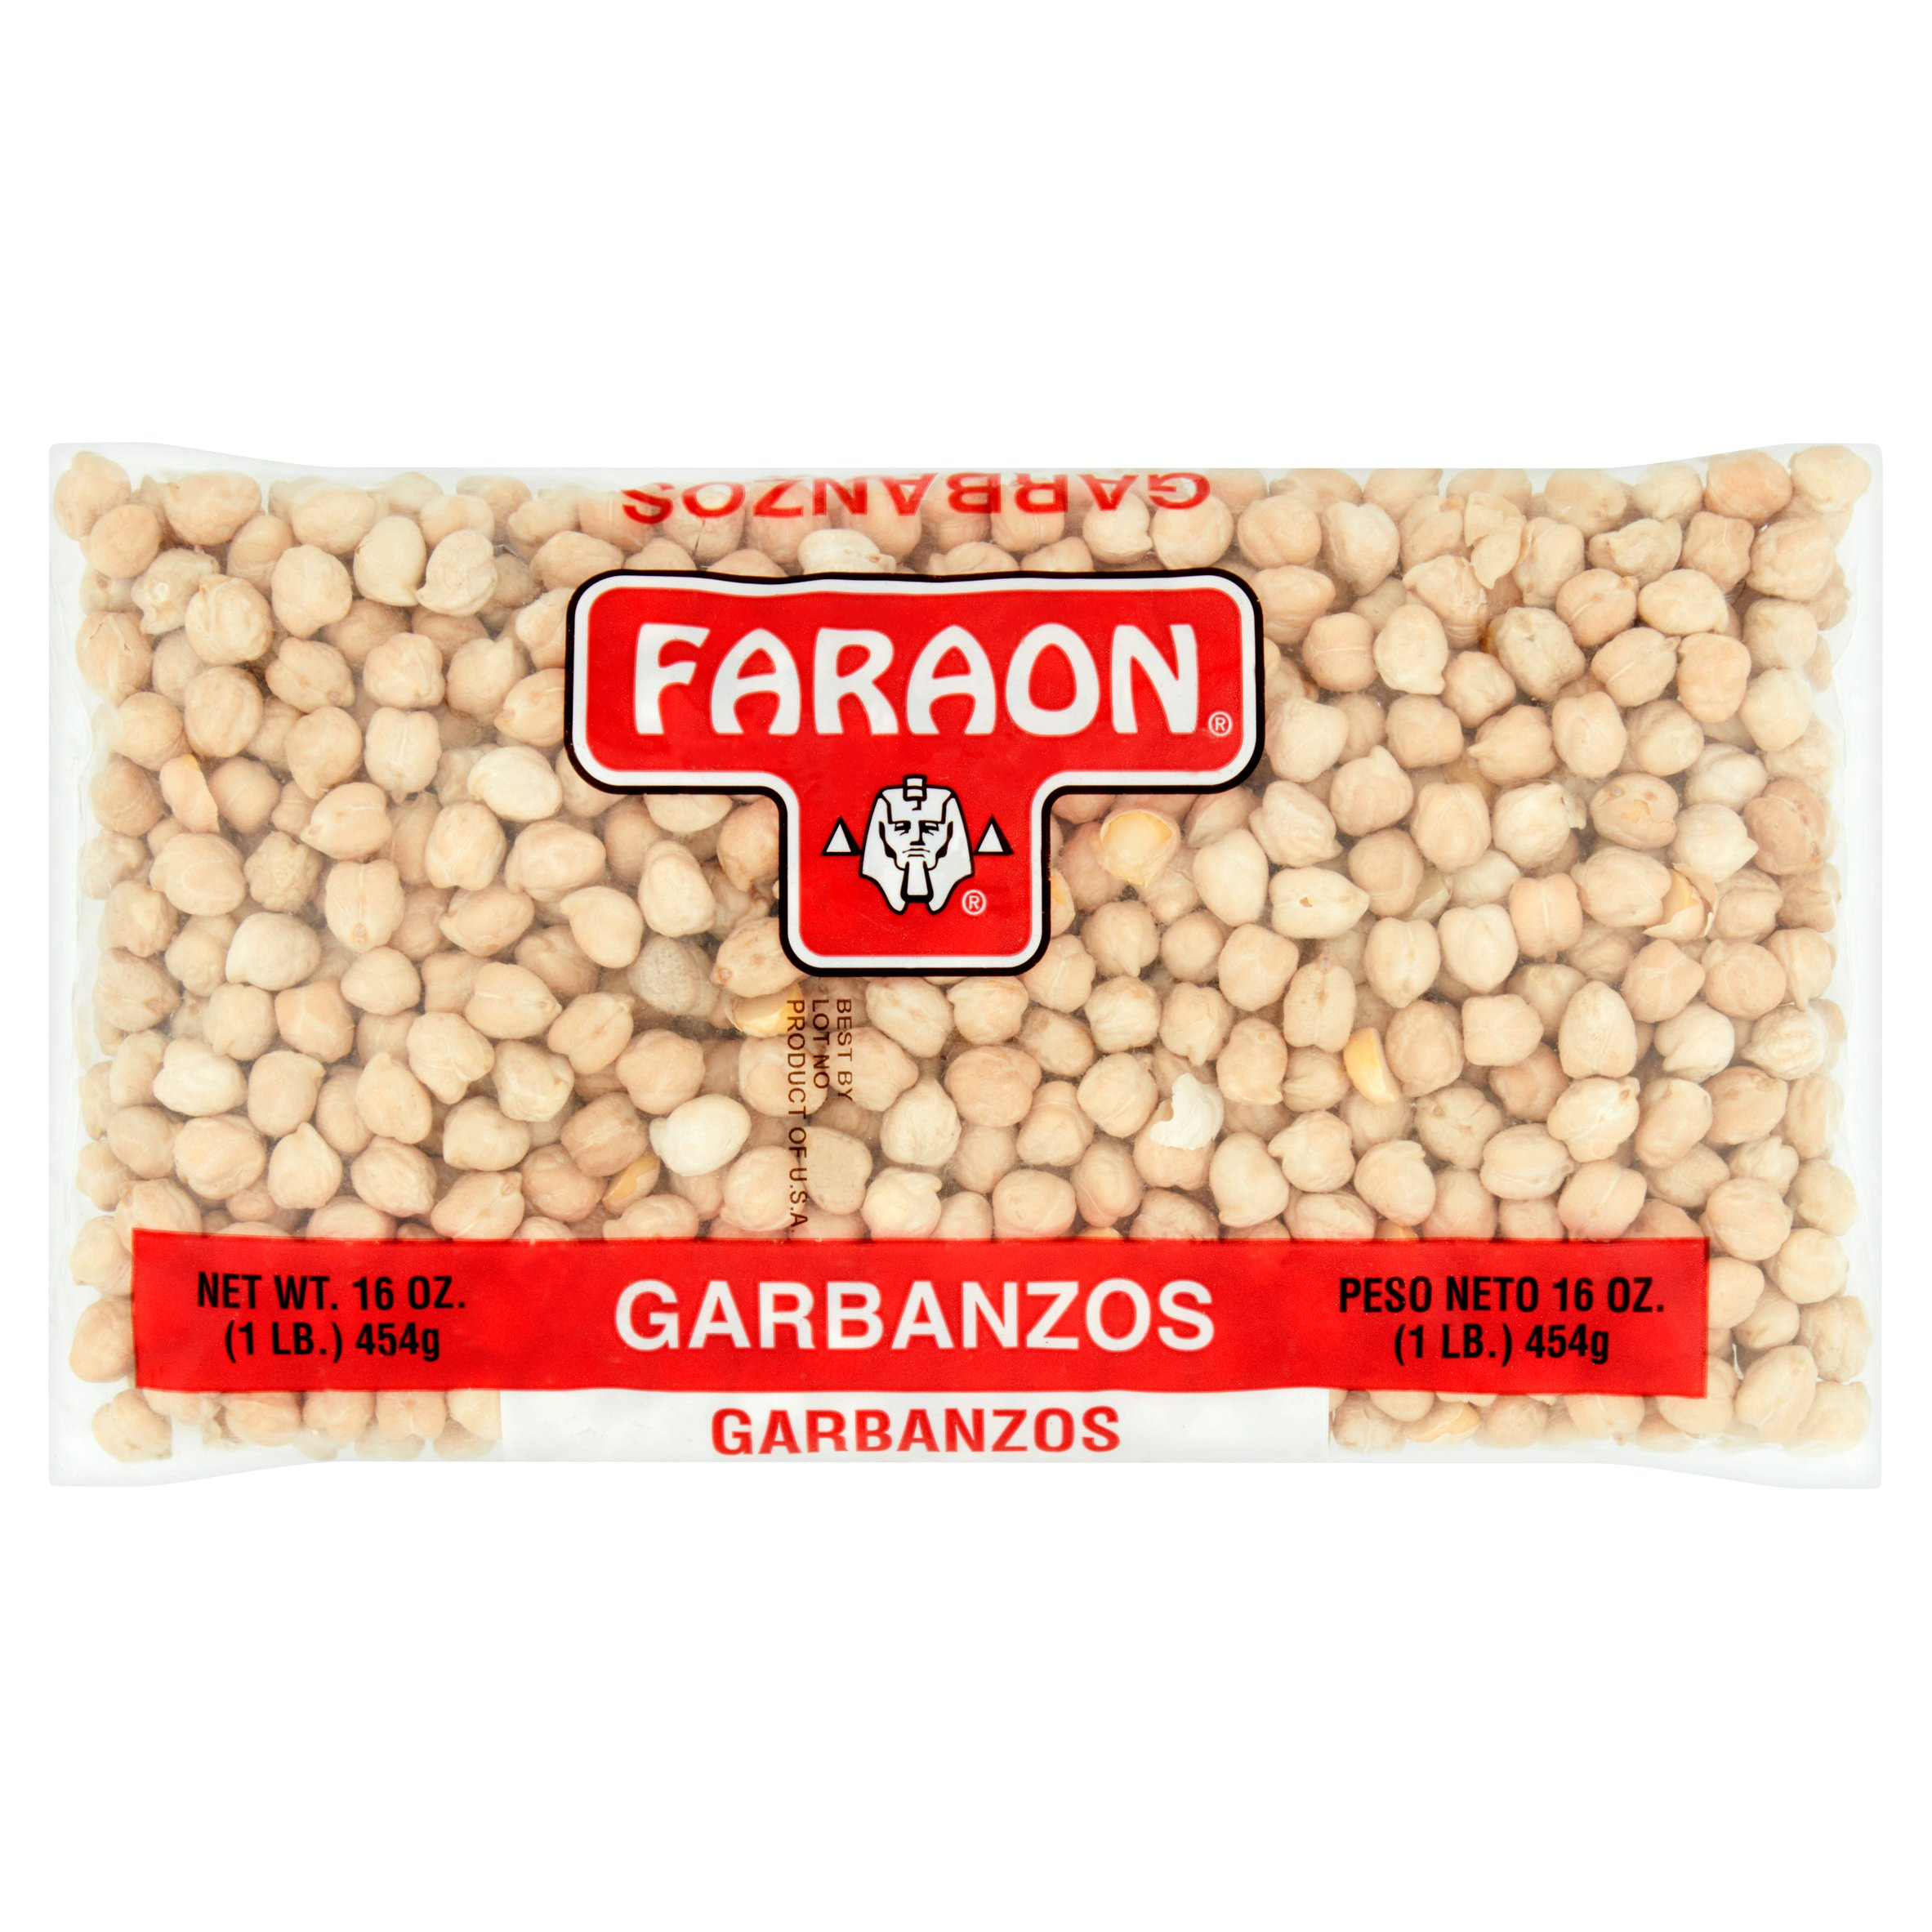 (2 Pack) Faraon Garbanzos, 16 oz